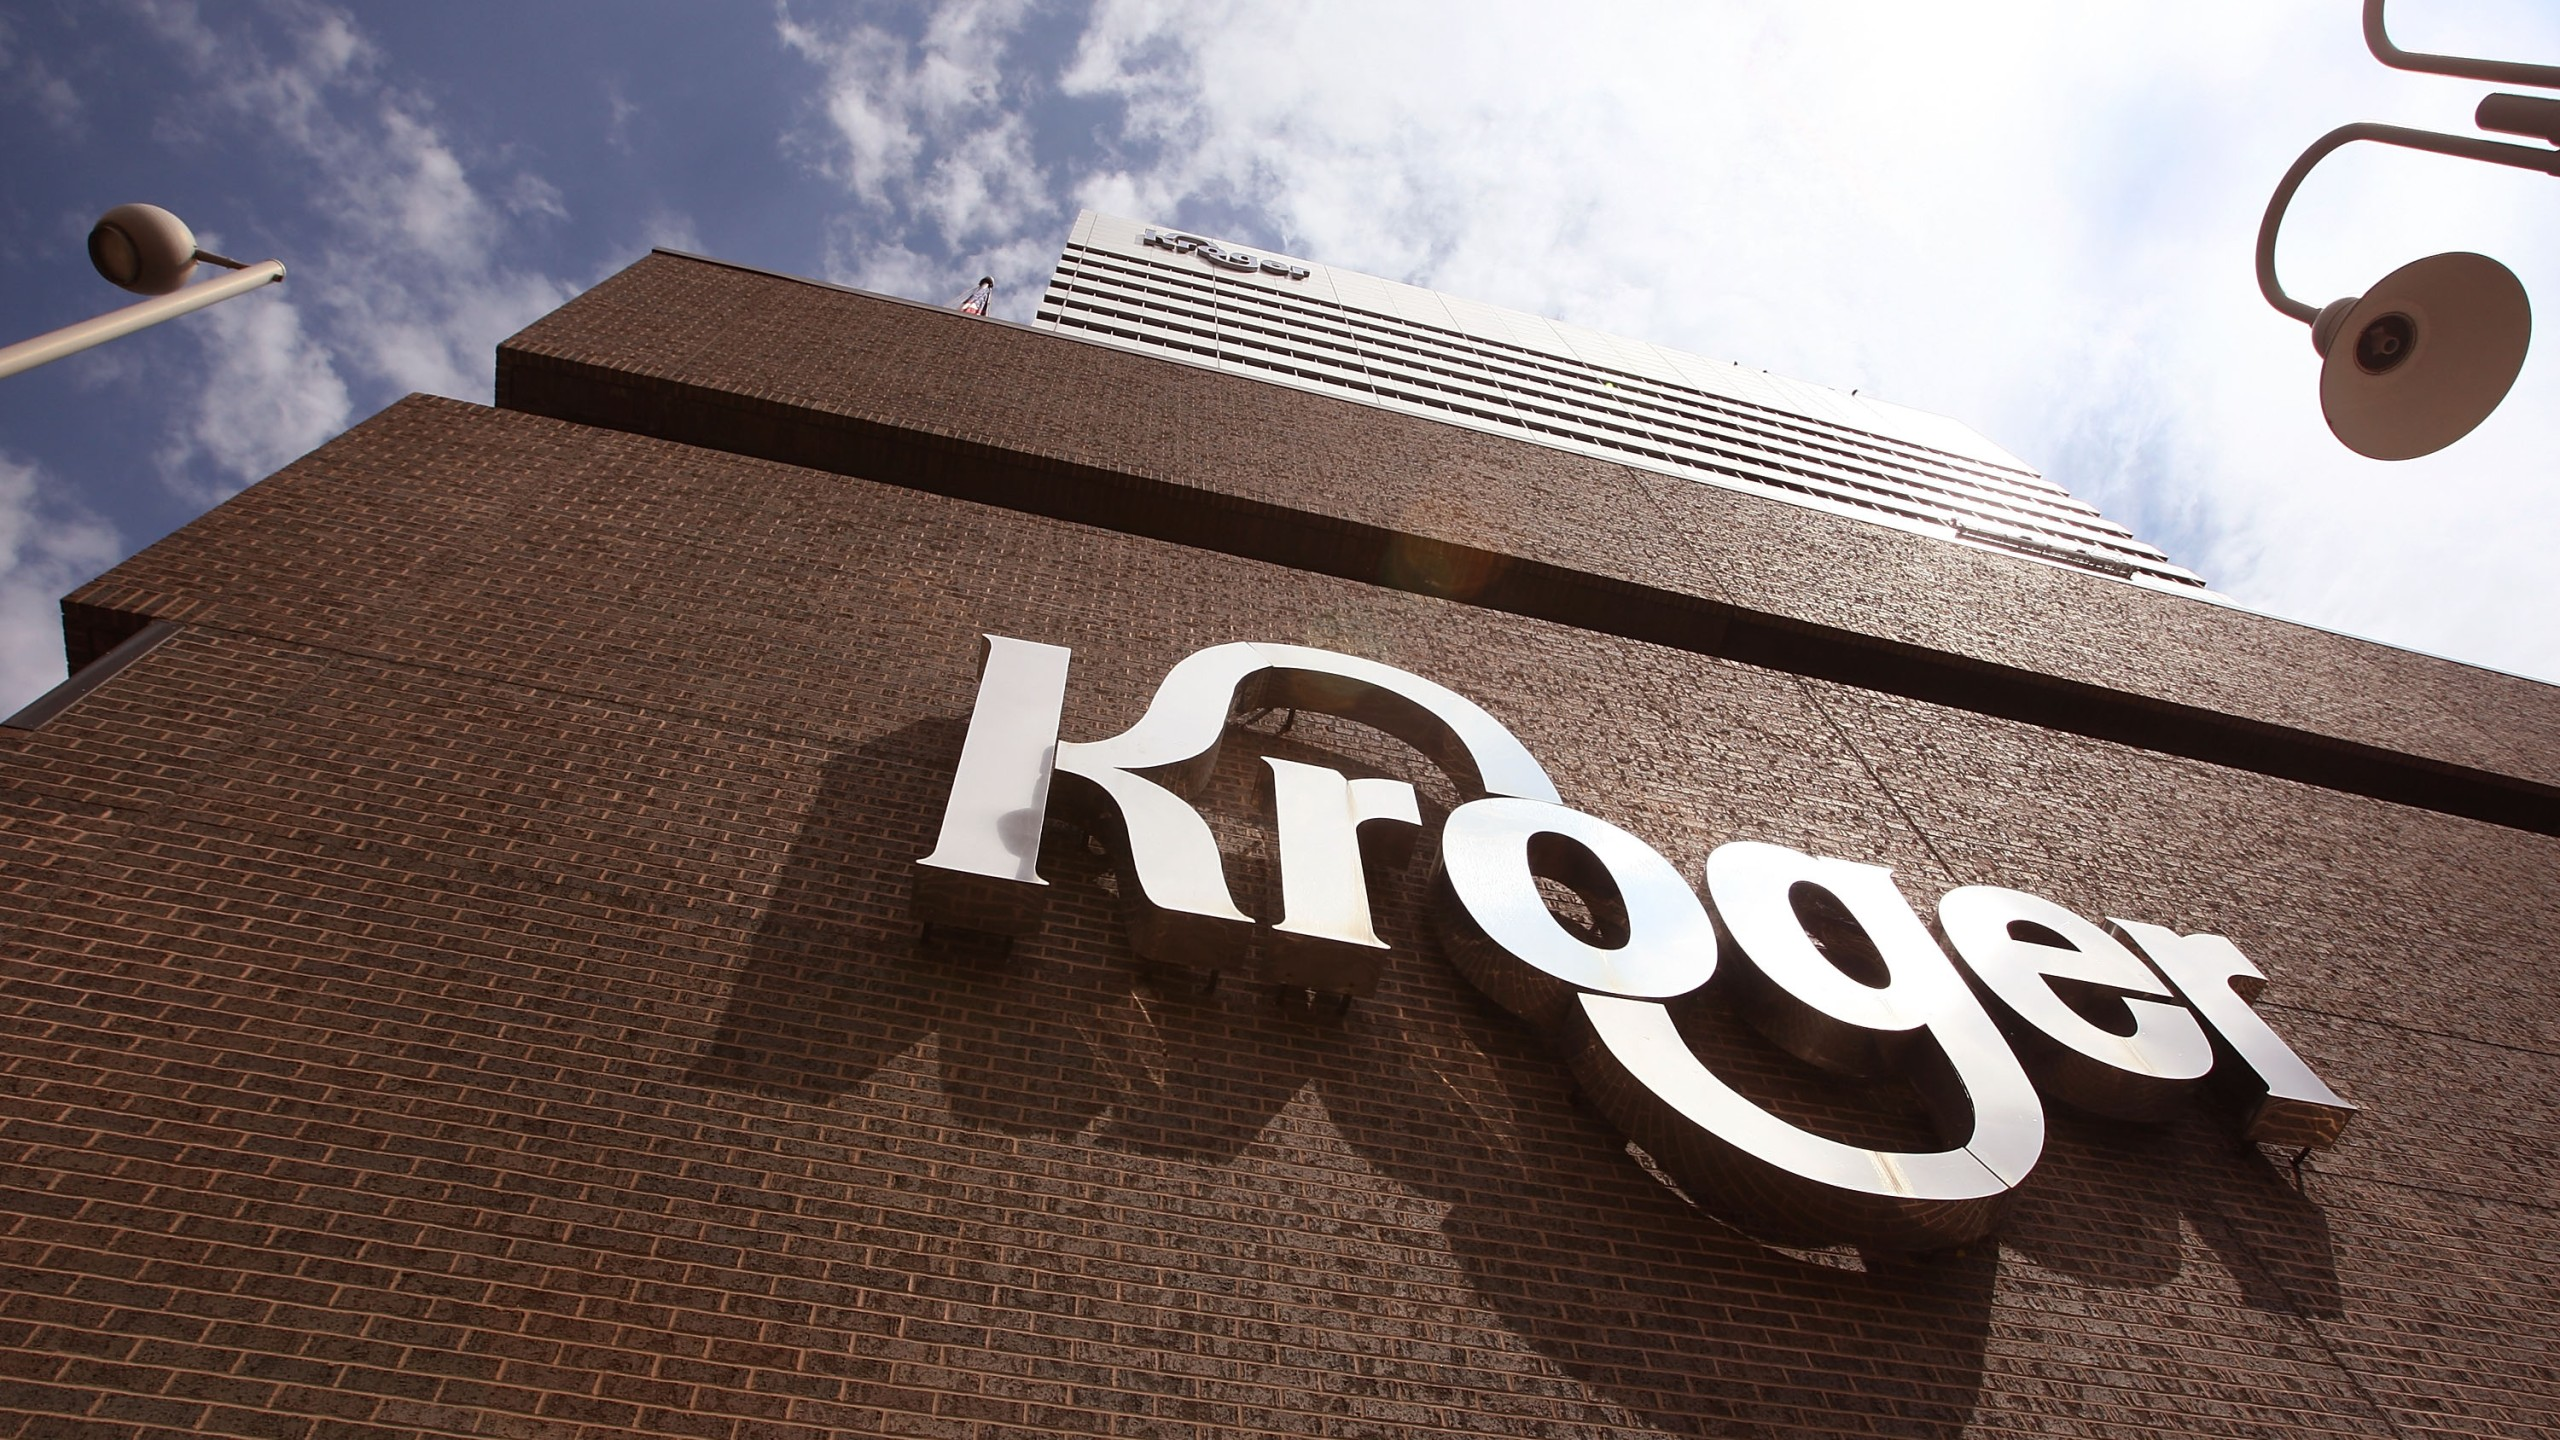 The Kroger Co. corporate headquarters is seen on July 15, 2008, in Cincinnati, Ohio. (Credit: Scott Olson/Getty Images)